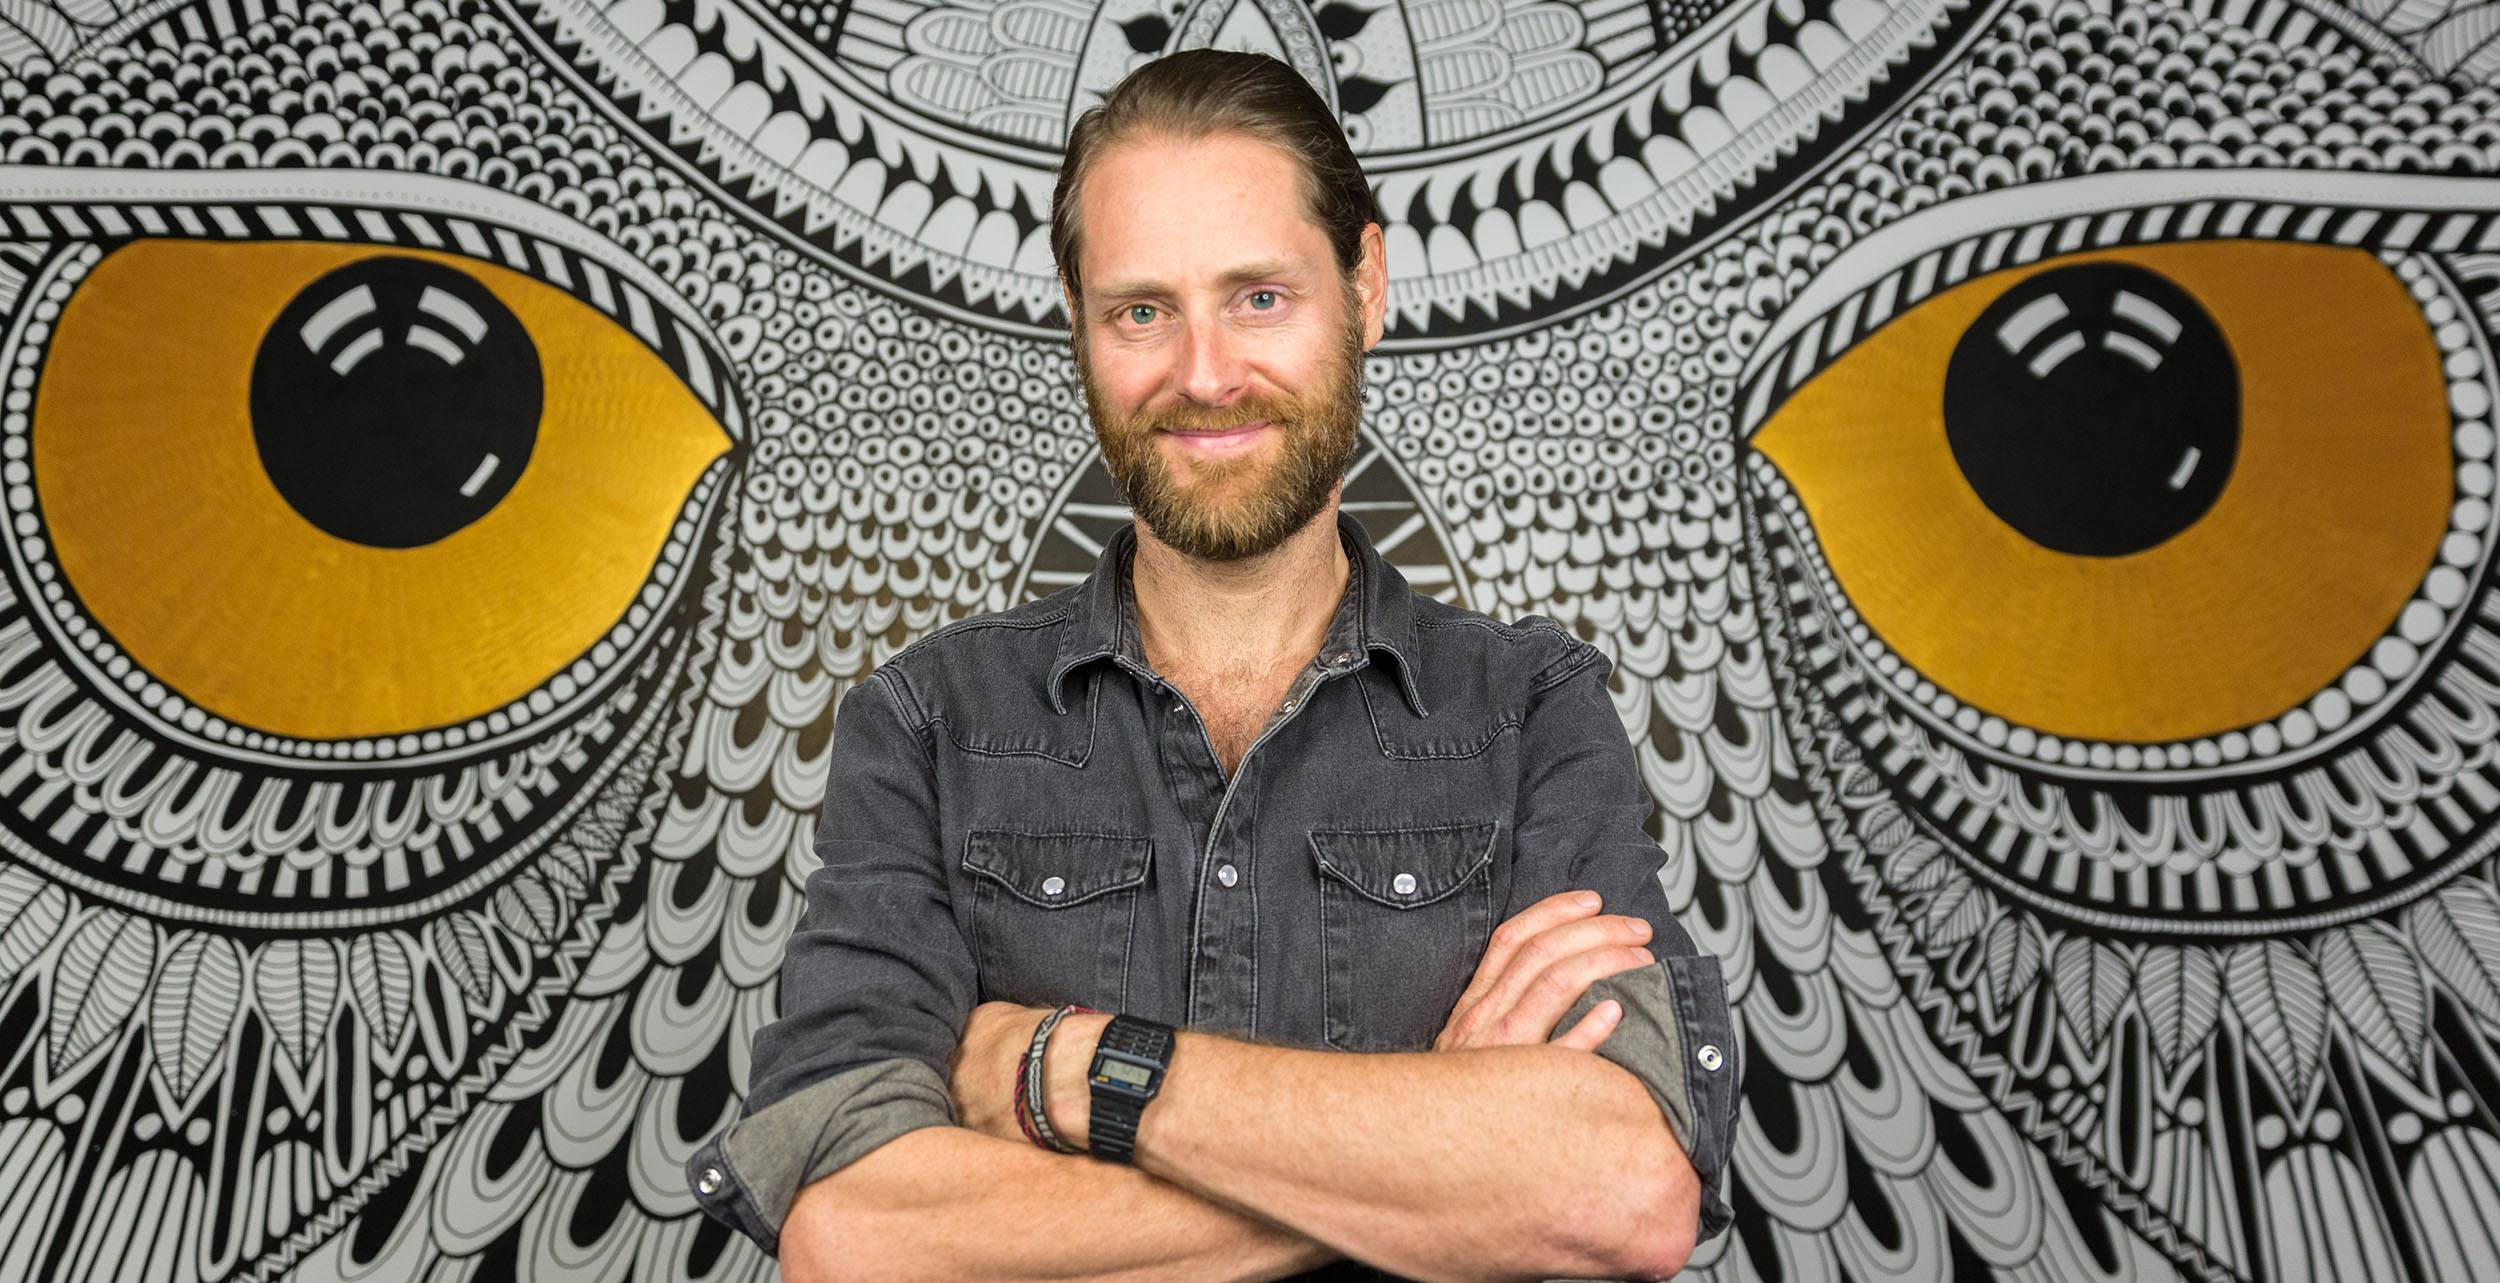 Vancouver-based Hootsuite considering selling itself for at least $750 million